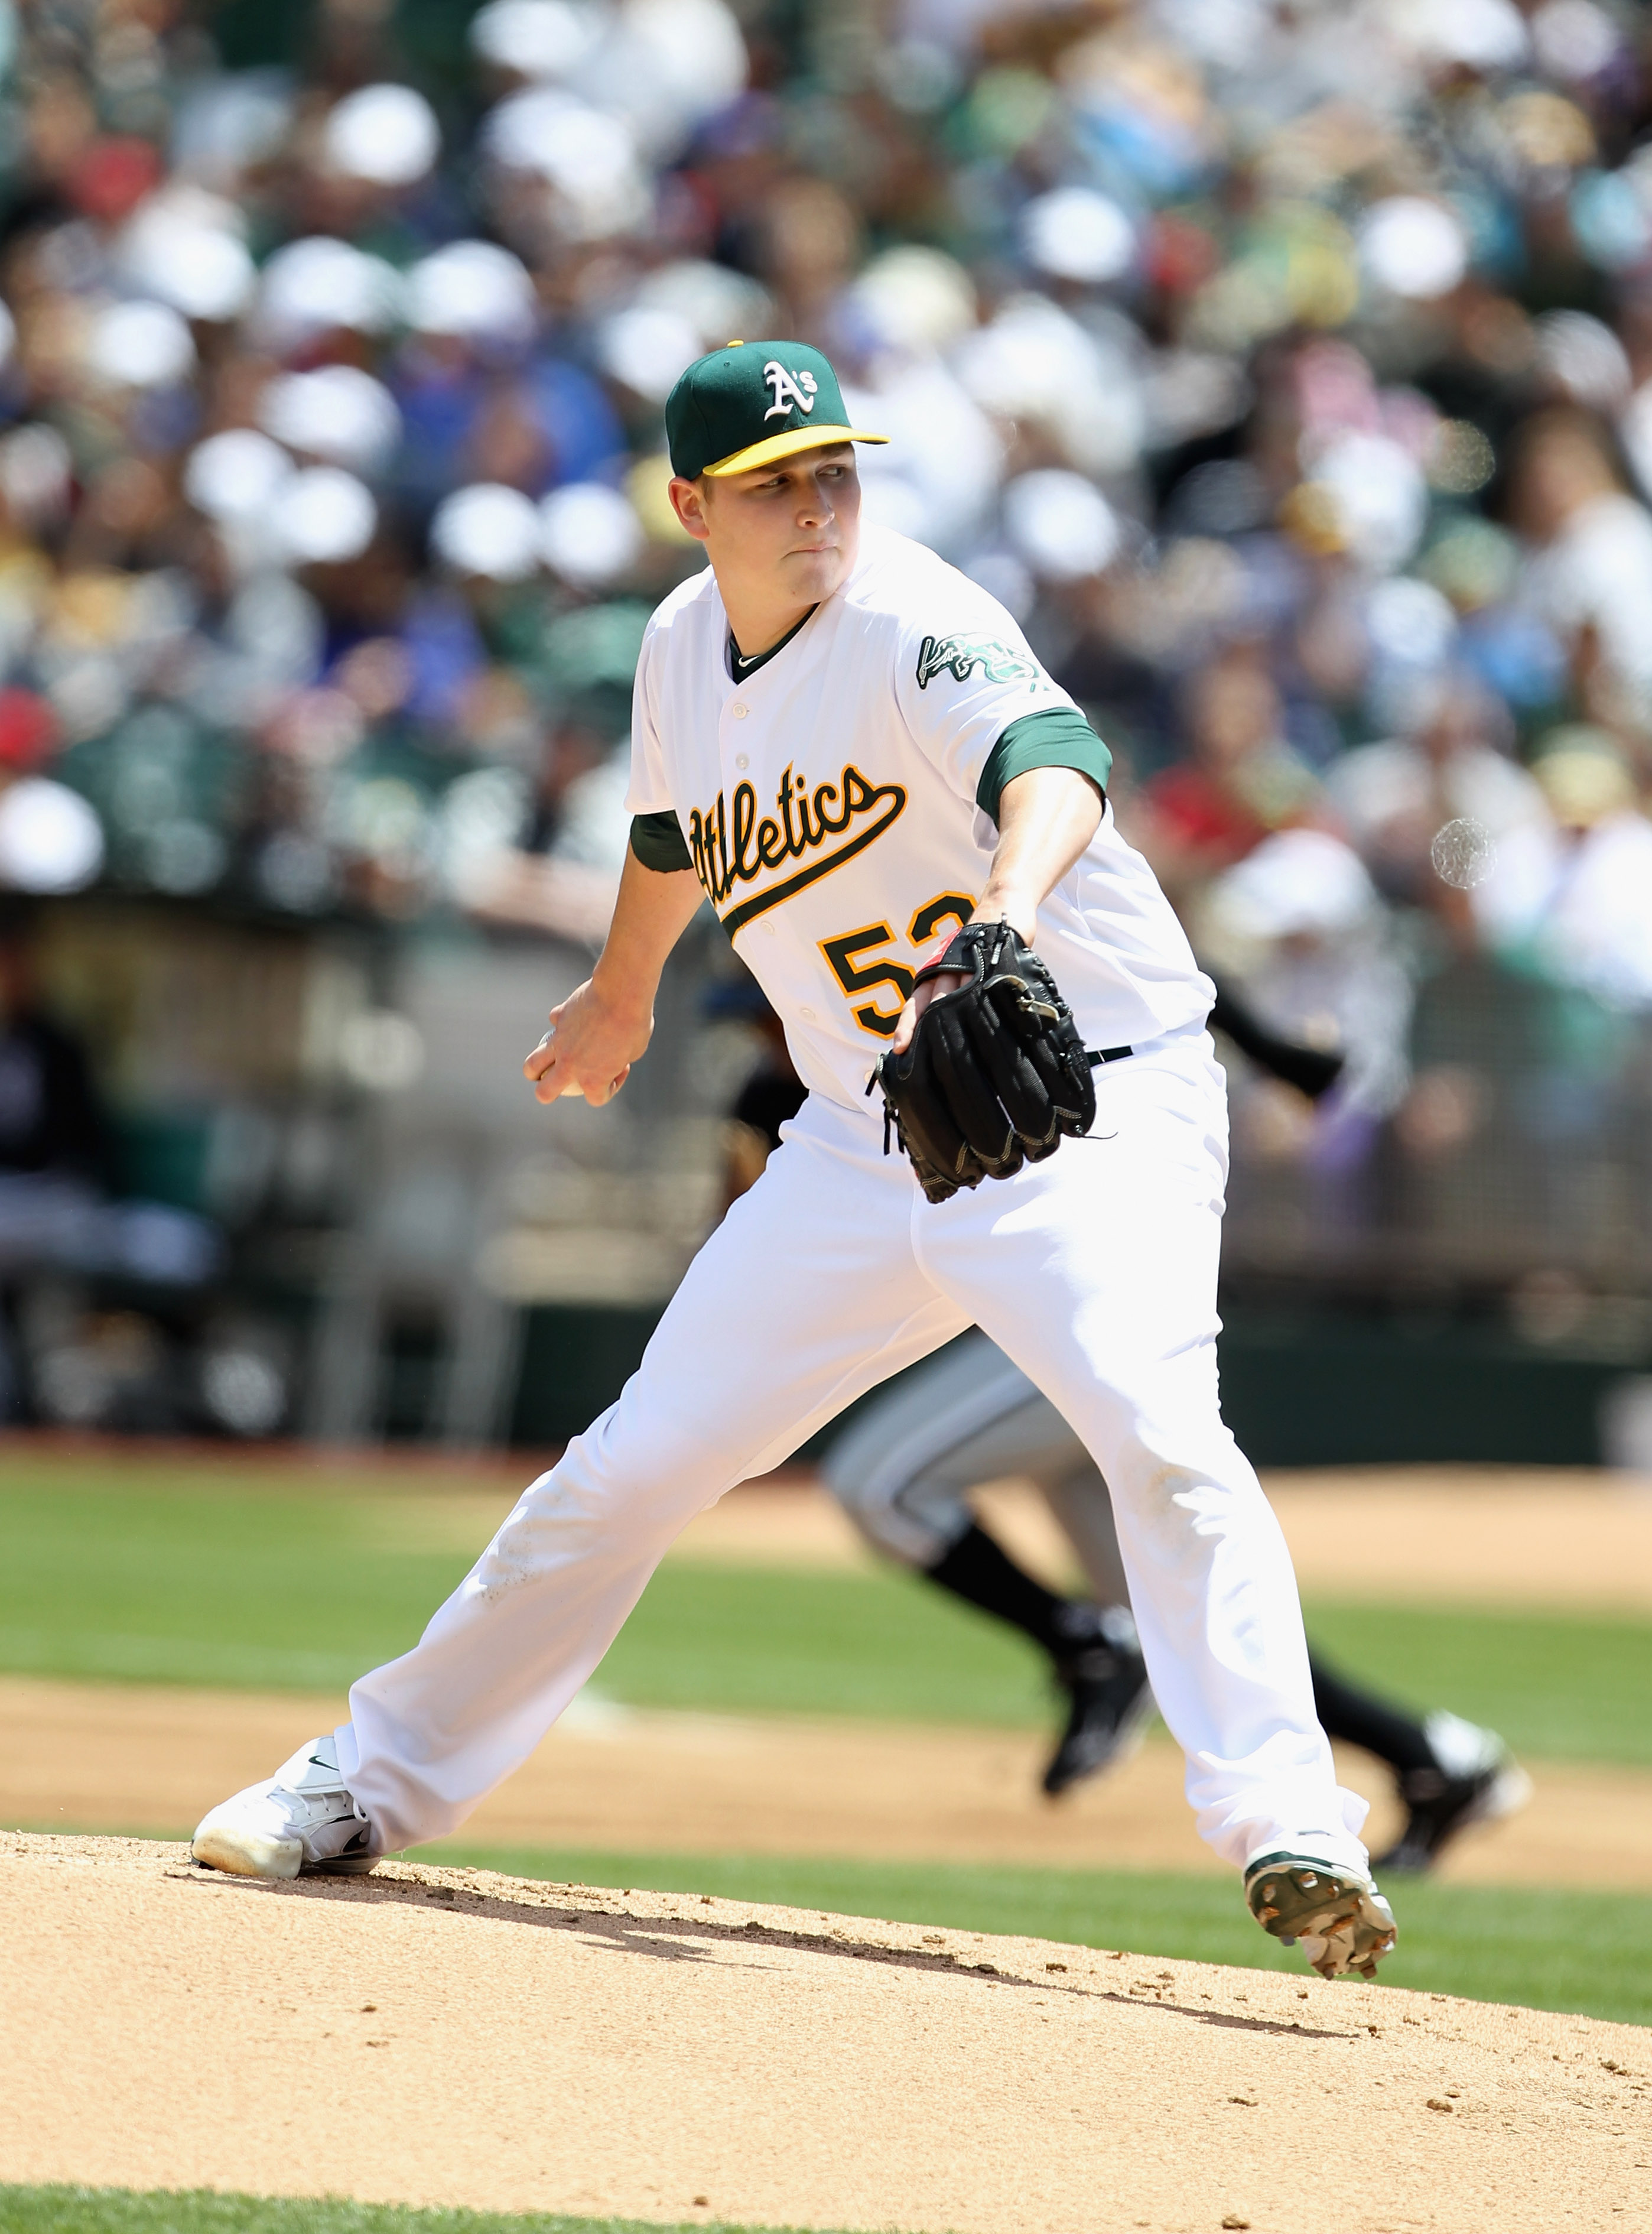 OAKLAND, CA - MAY 15:  Trevor Cahill #53 of the Oakland Athletics in action against the Chicago White Sox at Oakland-Alameda County Coliseum on May 15, 2011 in Oakland, California.  (Photo by Ezra Shaw/Getty Images)